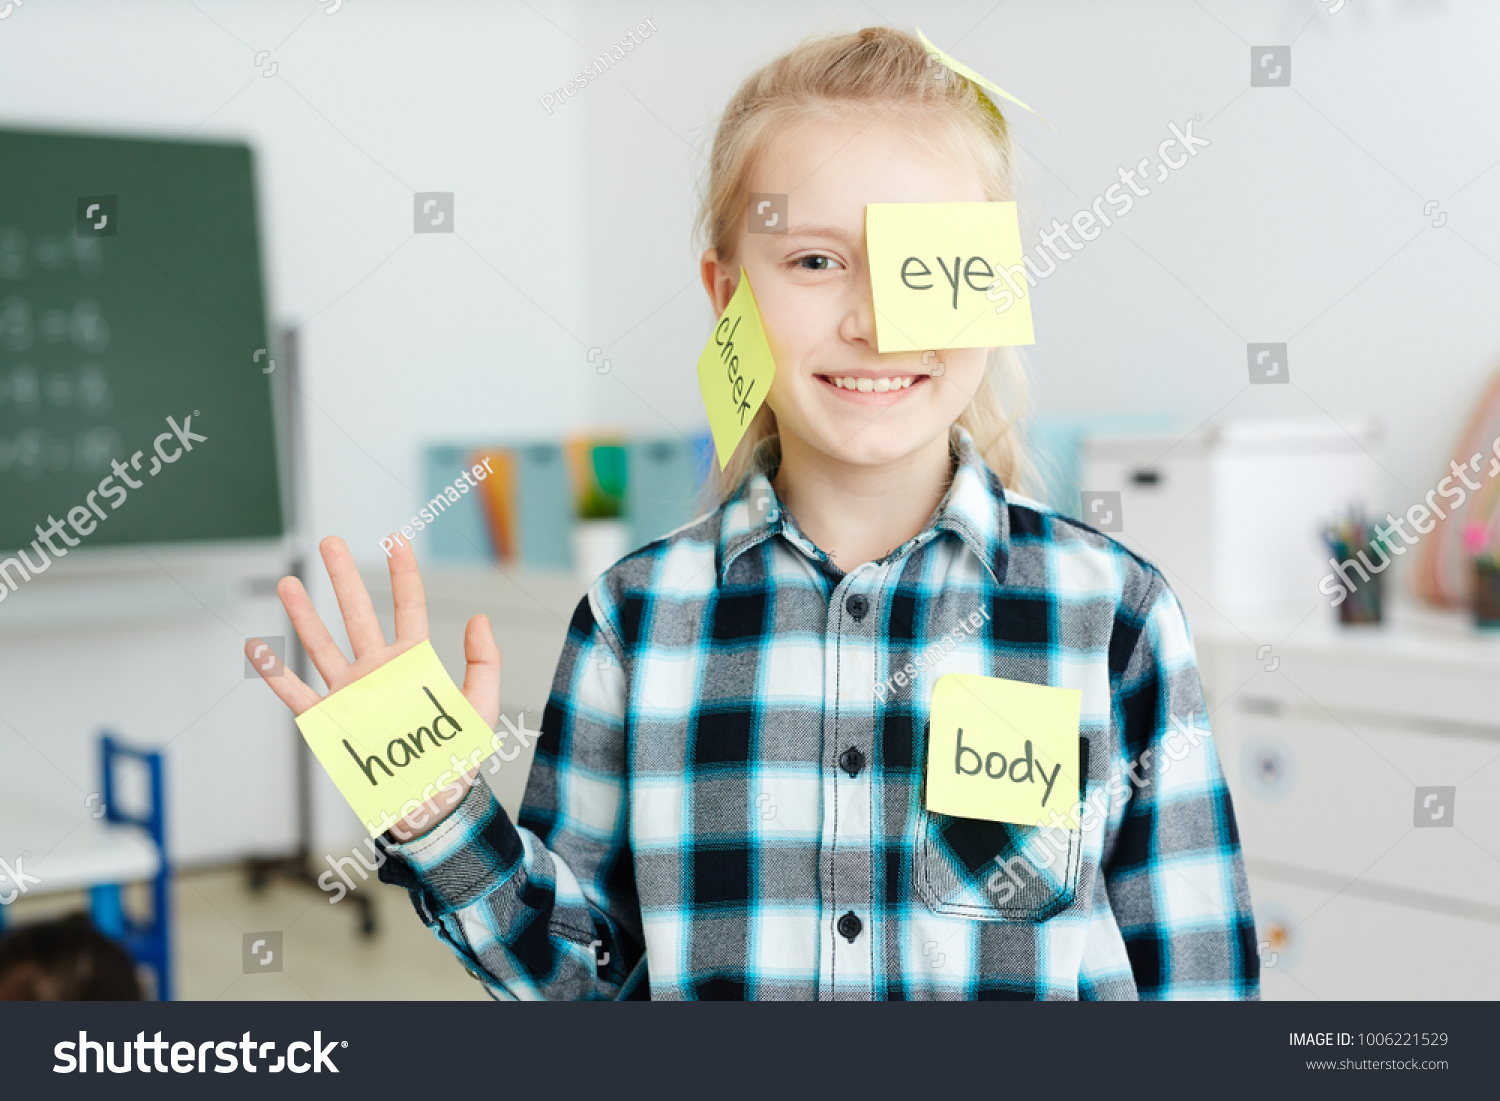 Happy schoolgirl having sticky notepapers with English names of body parts on her hand, cheek and eye #1006221529